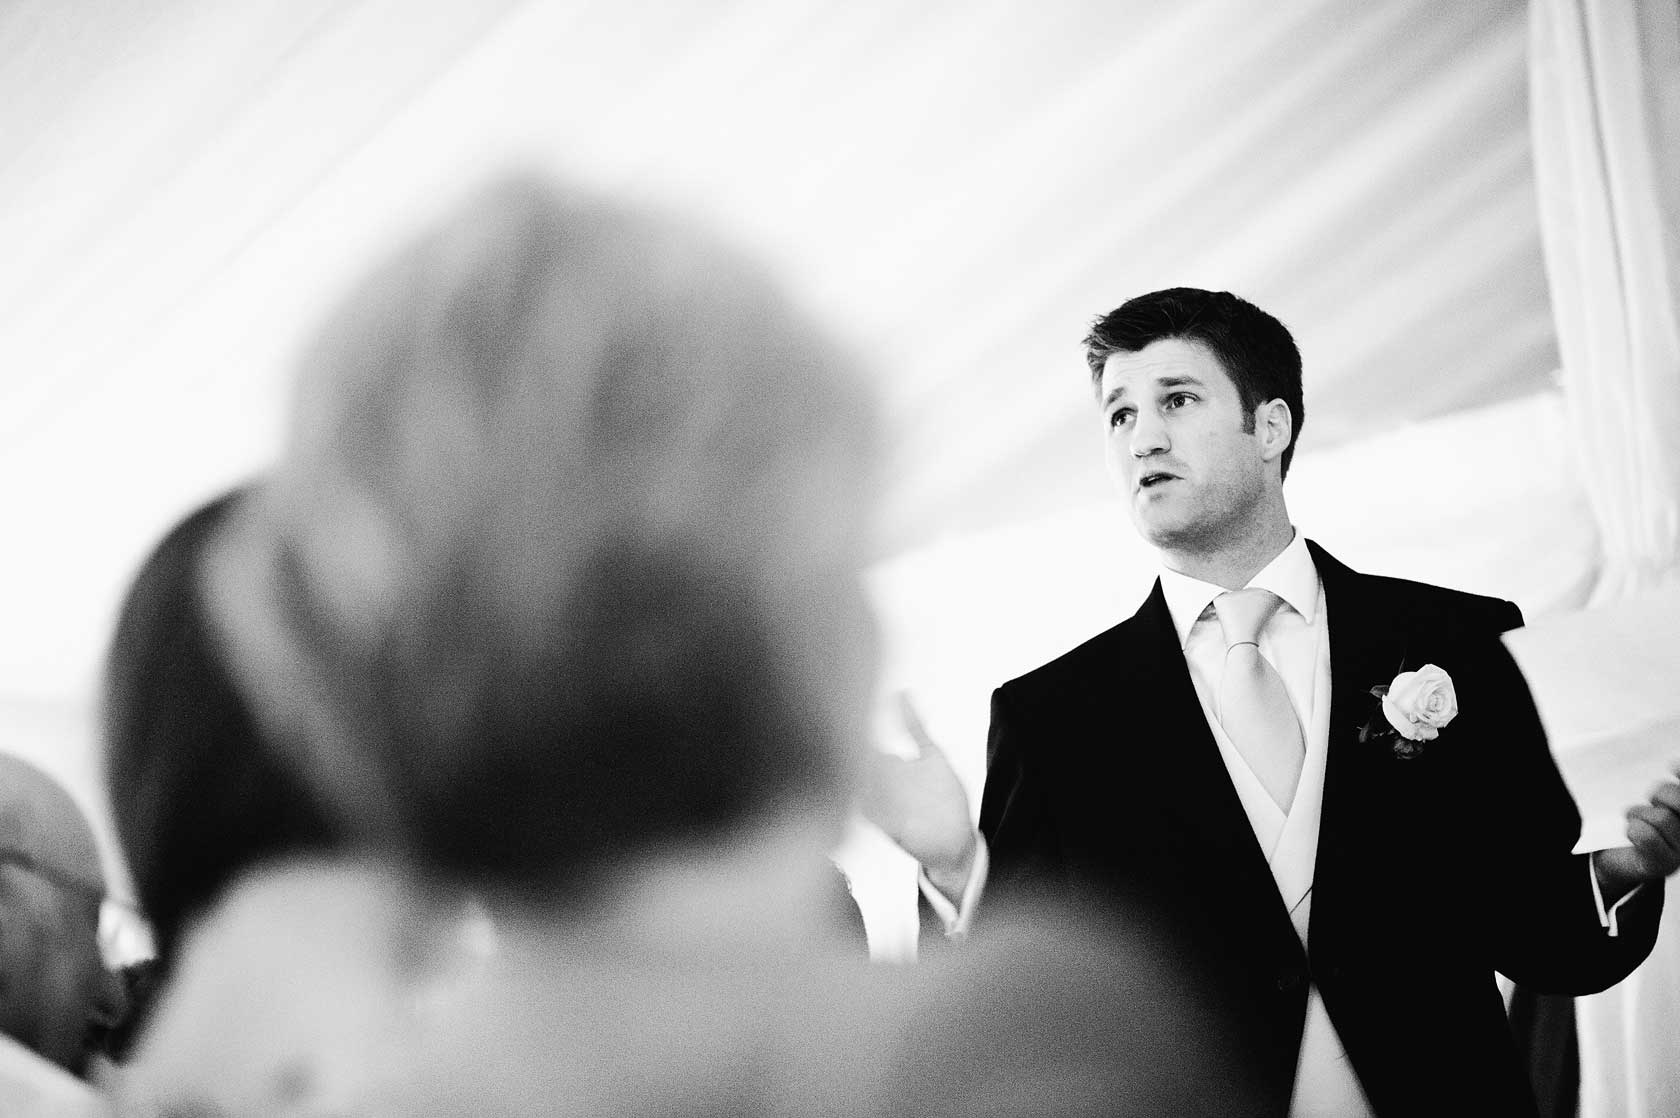 Reportage Wedding Photography at Fountains Abbey